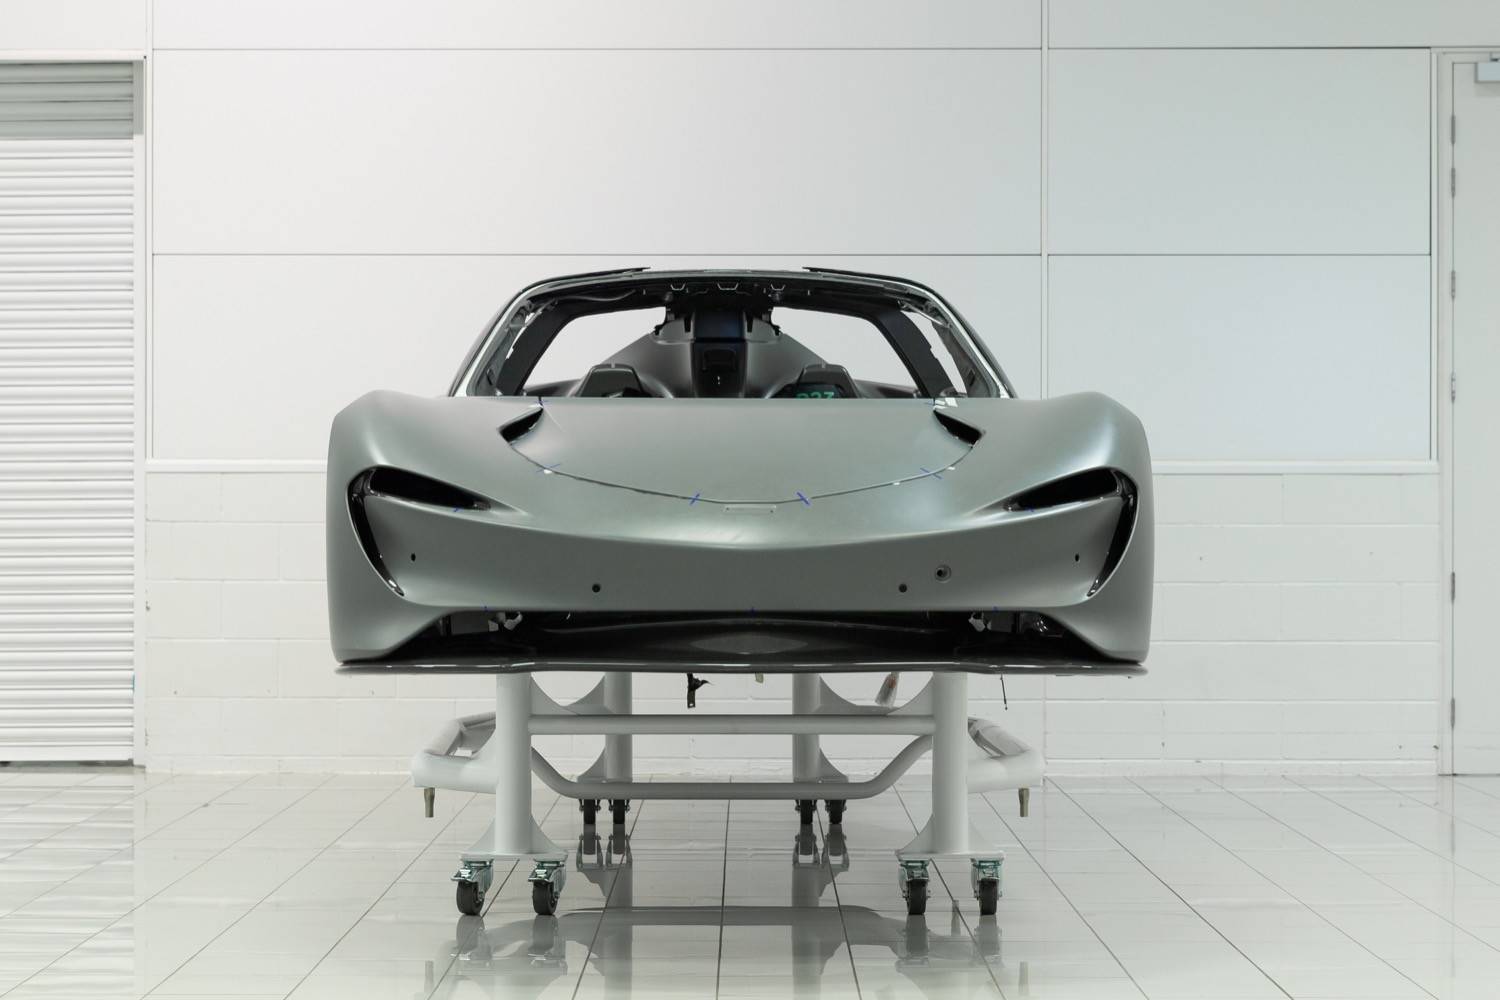 2020_mclaren_speedtail_max_speed_12